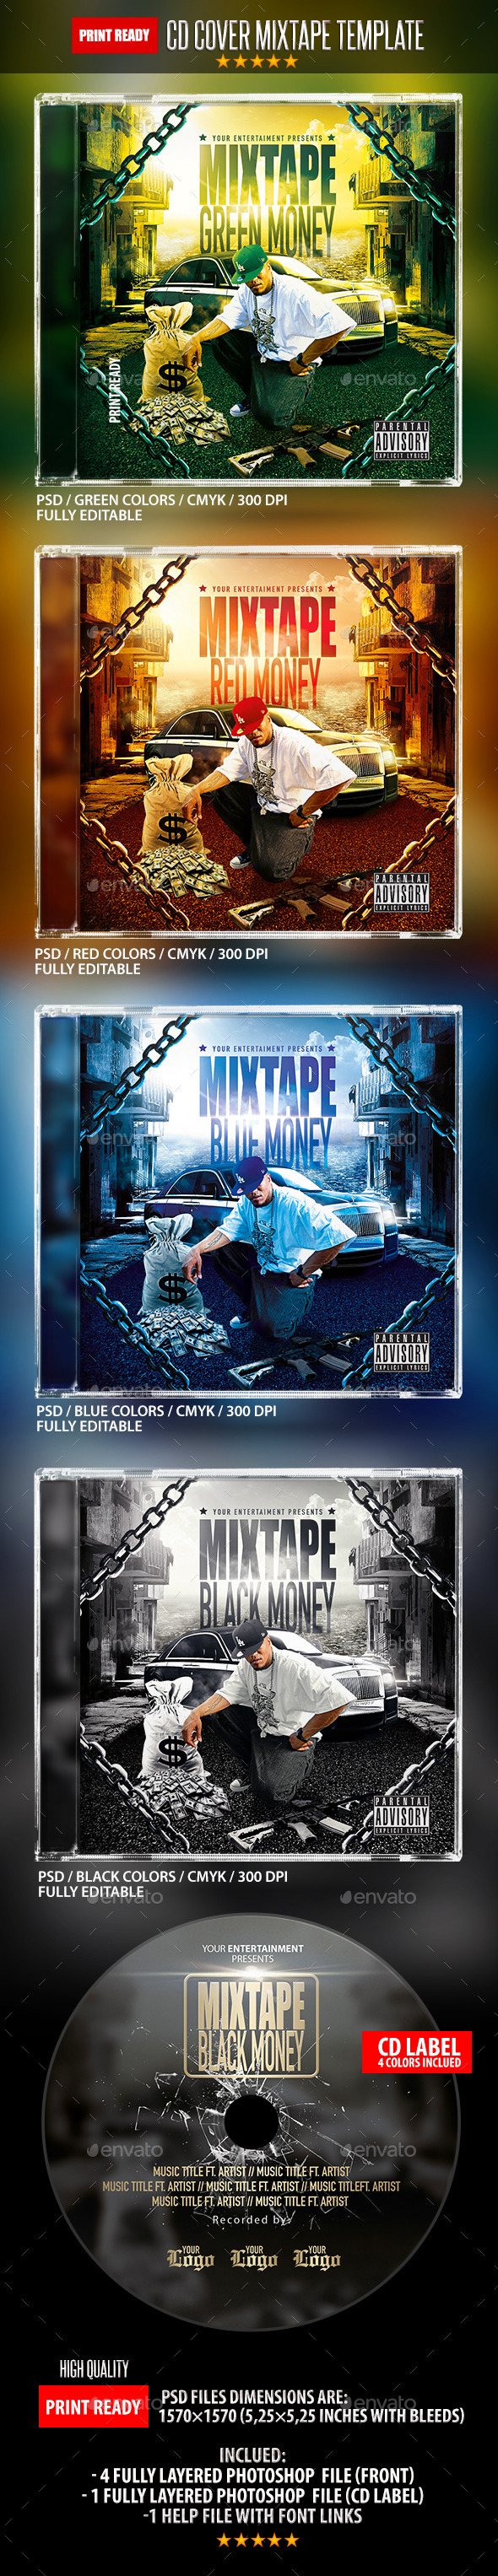 GraphicRiver Green Money Mixtape Hip Hop Cd Template 10318735